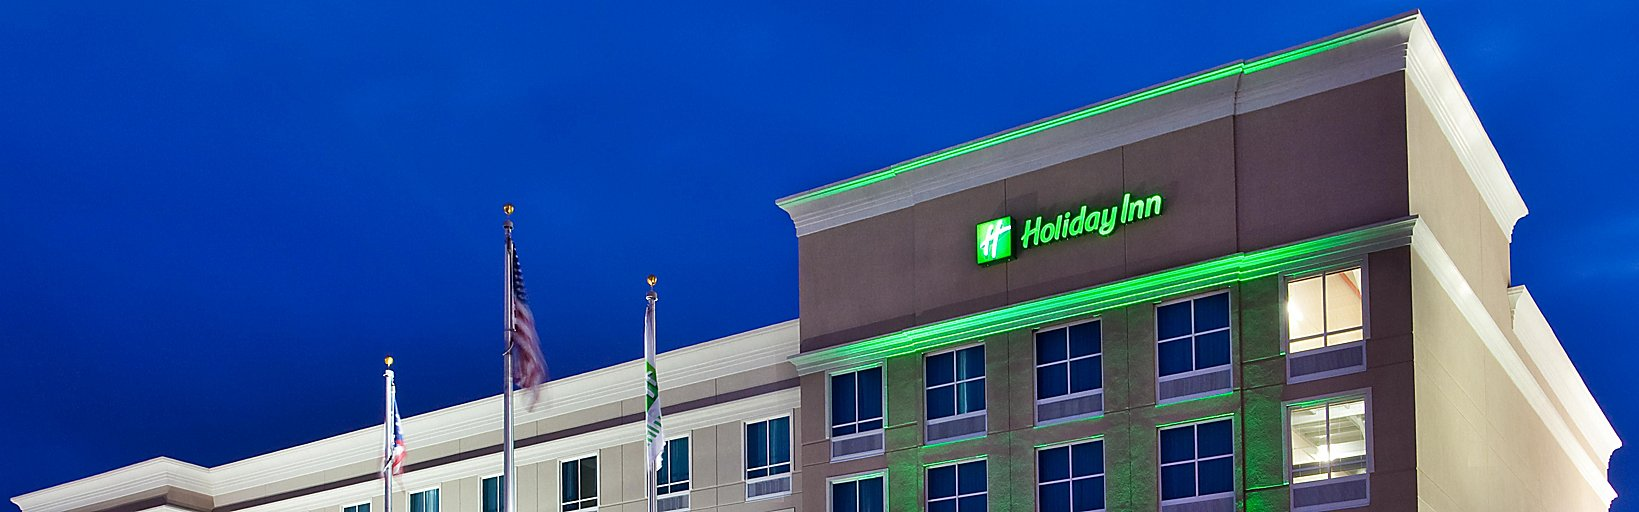 Entrance A Friendly Welcome Awaits As You Enter Holiday Inn Toledo Maumee